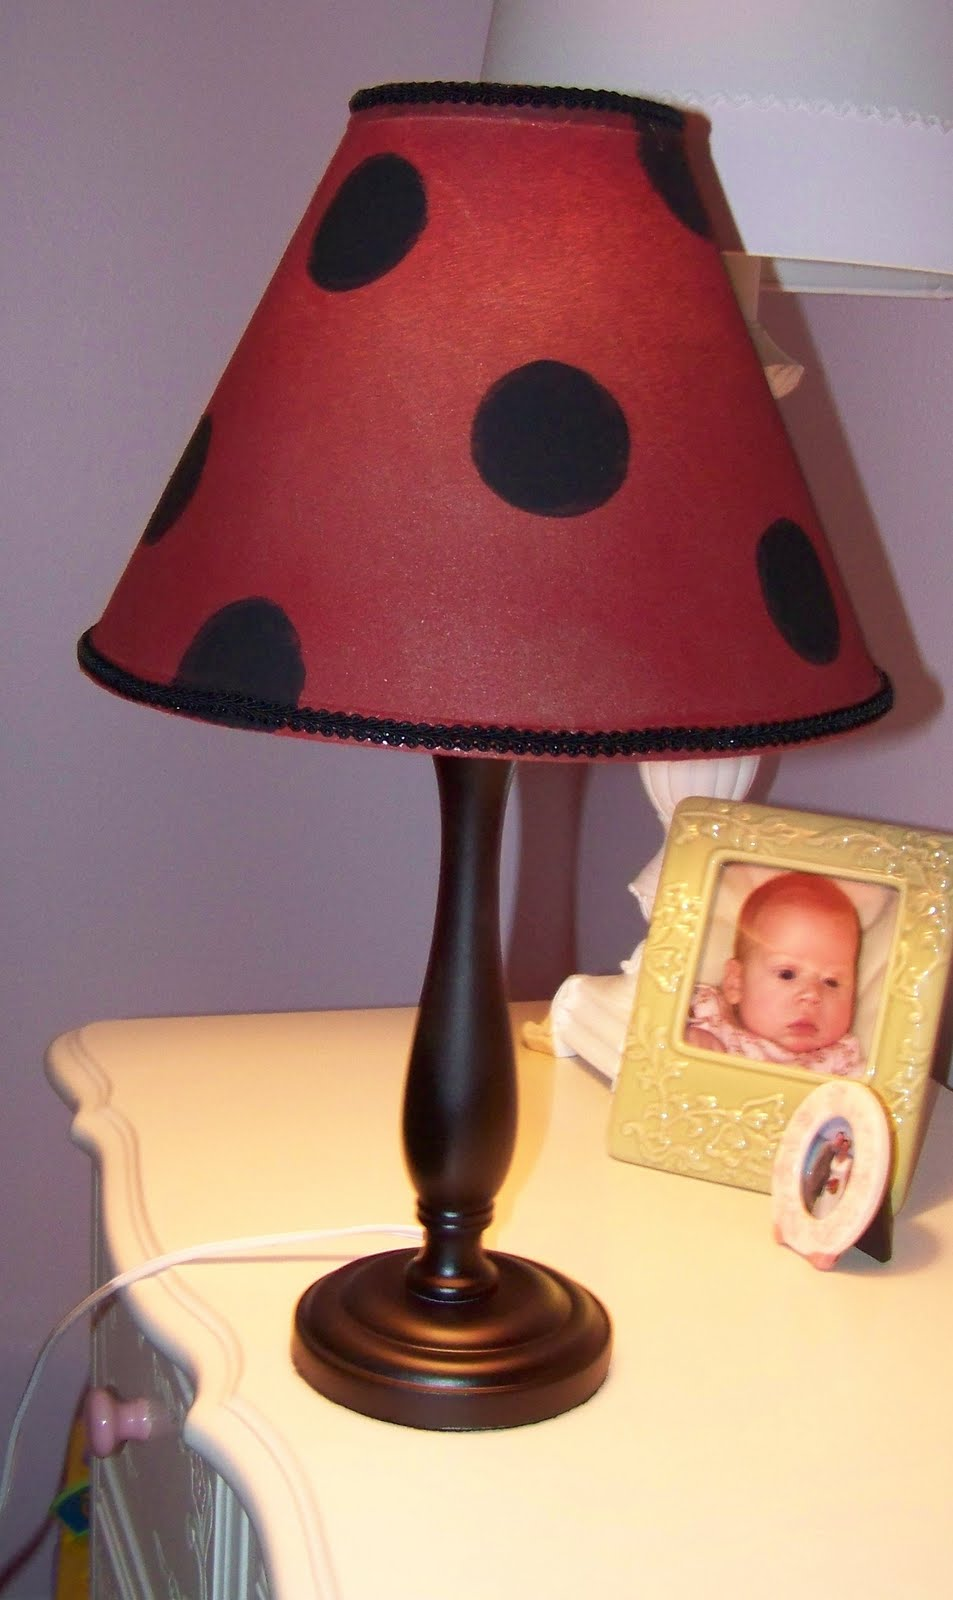 The idea attic ladybug lamp for now its in my daughters room for us to admire while it waits for a home in a cute girly ladybug room mozeypictures Choice Image